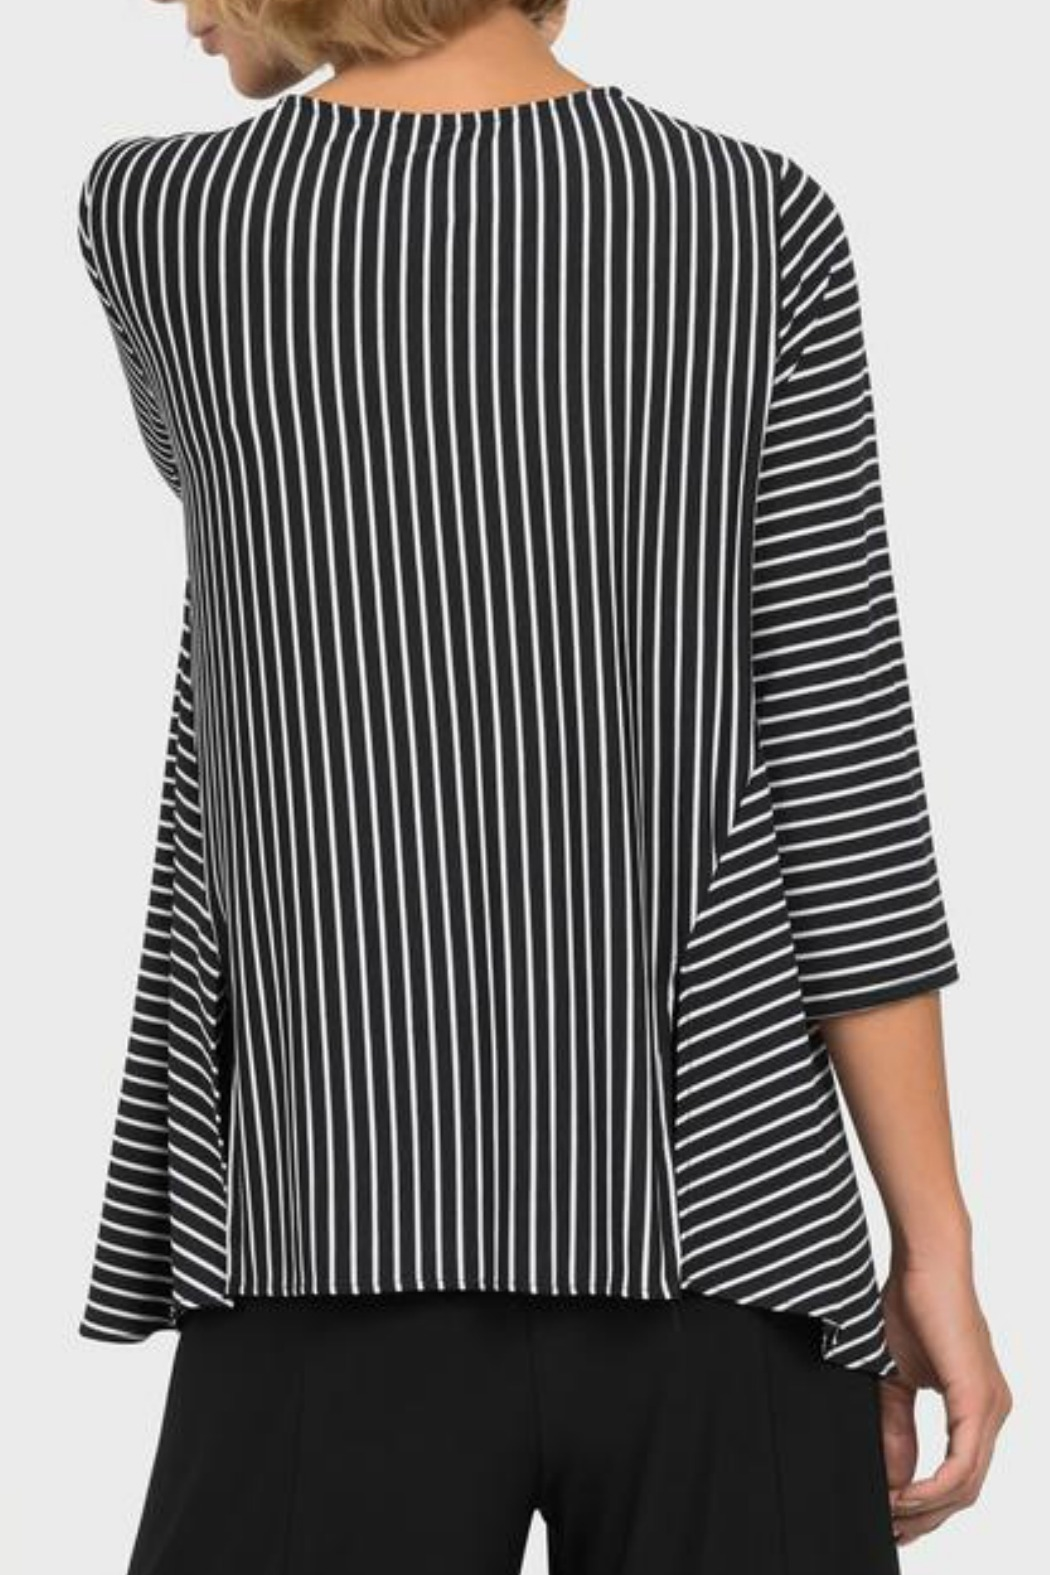 Joseph Ribkoff USA Inc. Black + White Stripe Top - Side Cropped Image